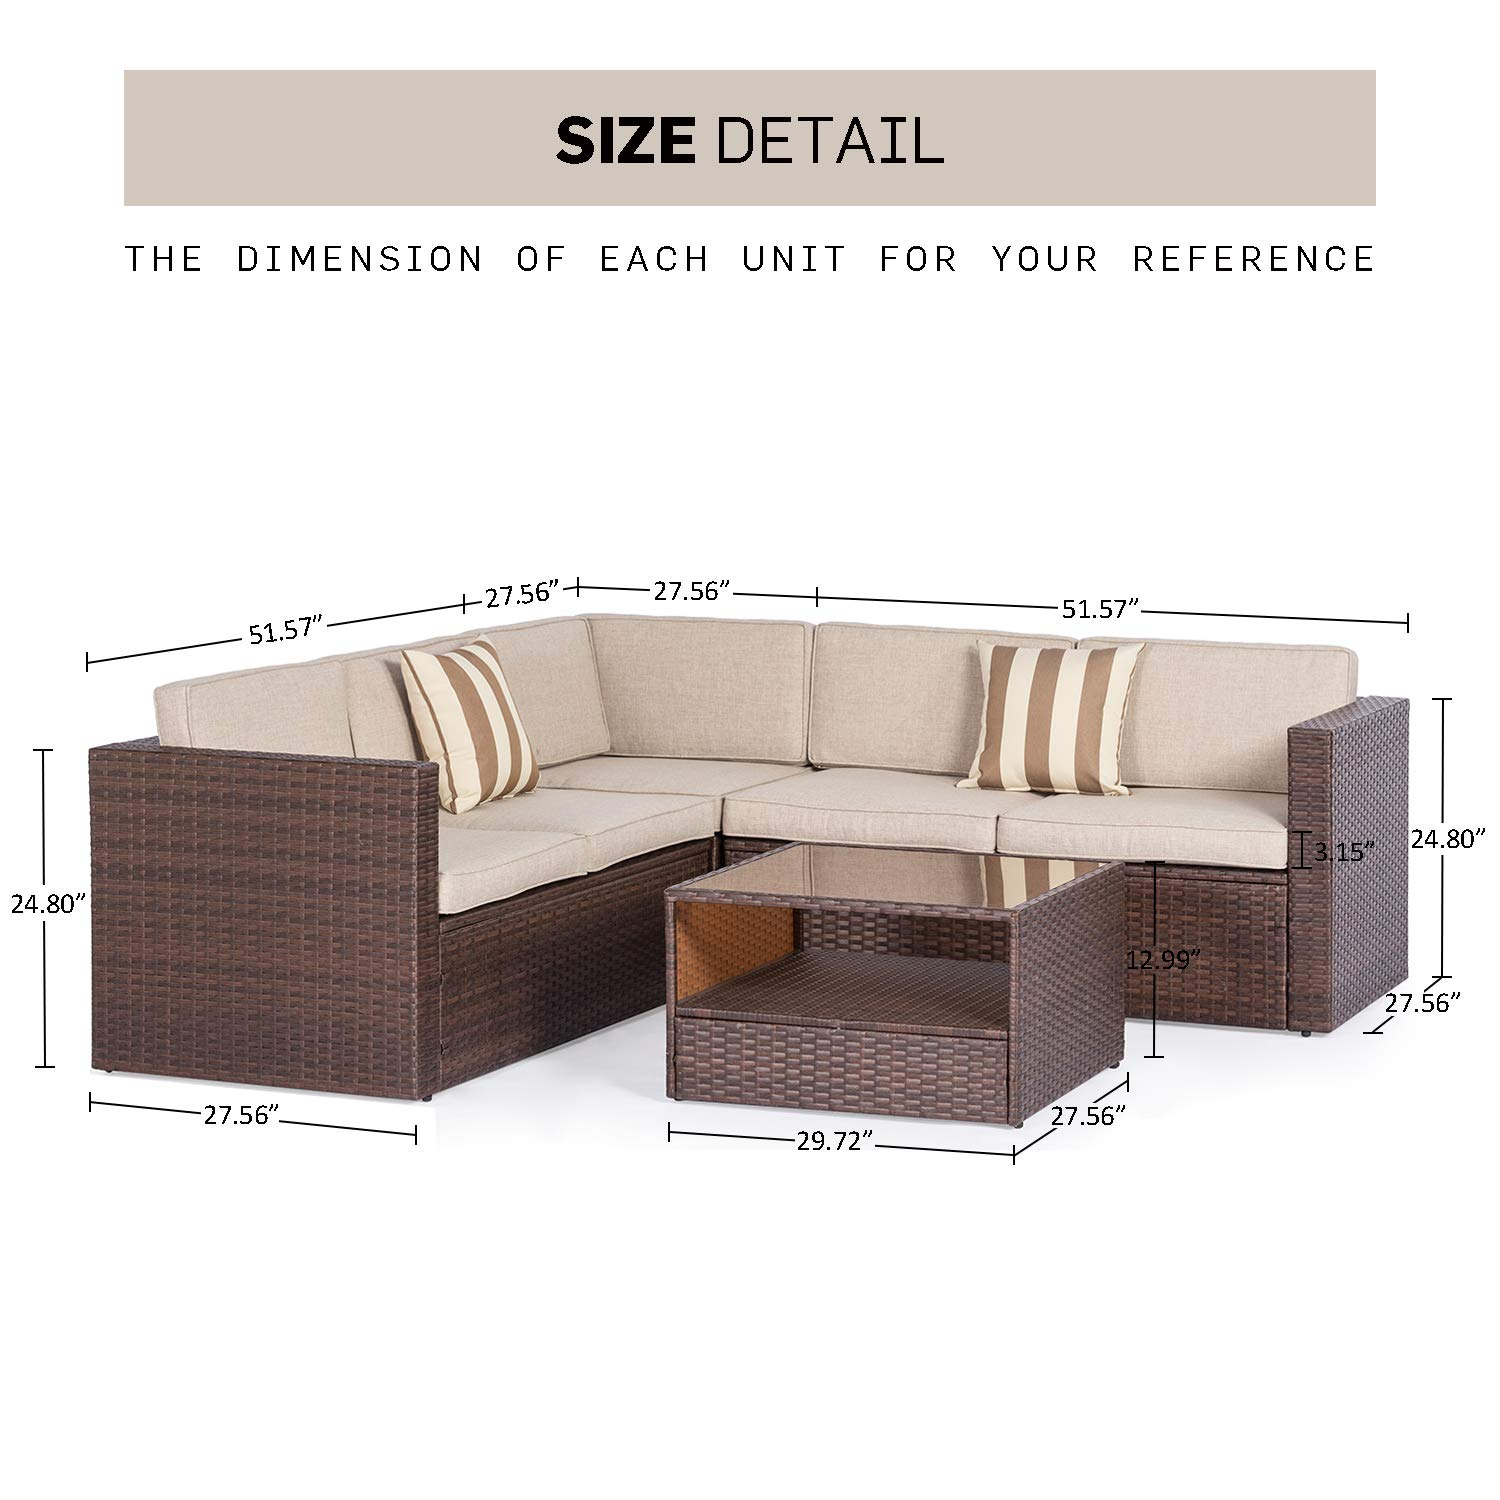 SOLAURA Outdoor 4-Piece Sofa Sectional Set All Weather Brown Wicker with Beige Waterproof Cushions Sophisticated Glass Coffee Table Patio, Backyard, Pool